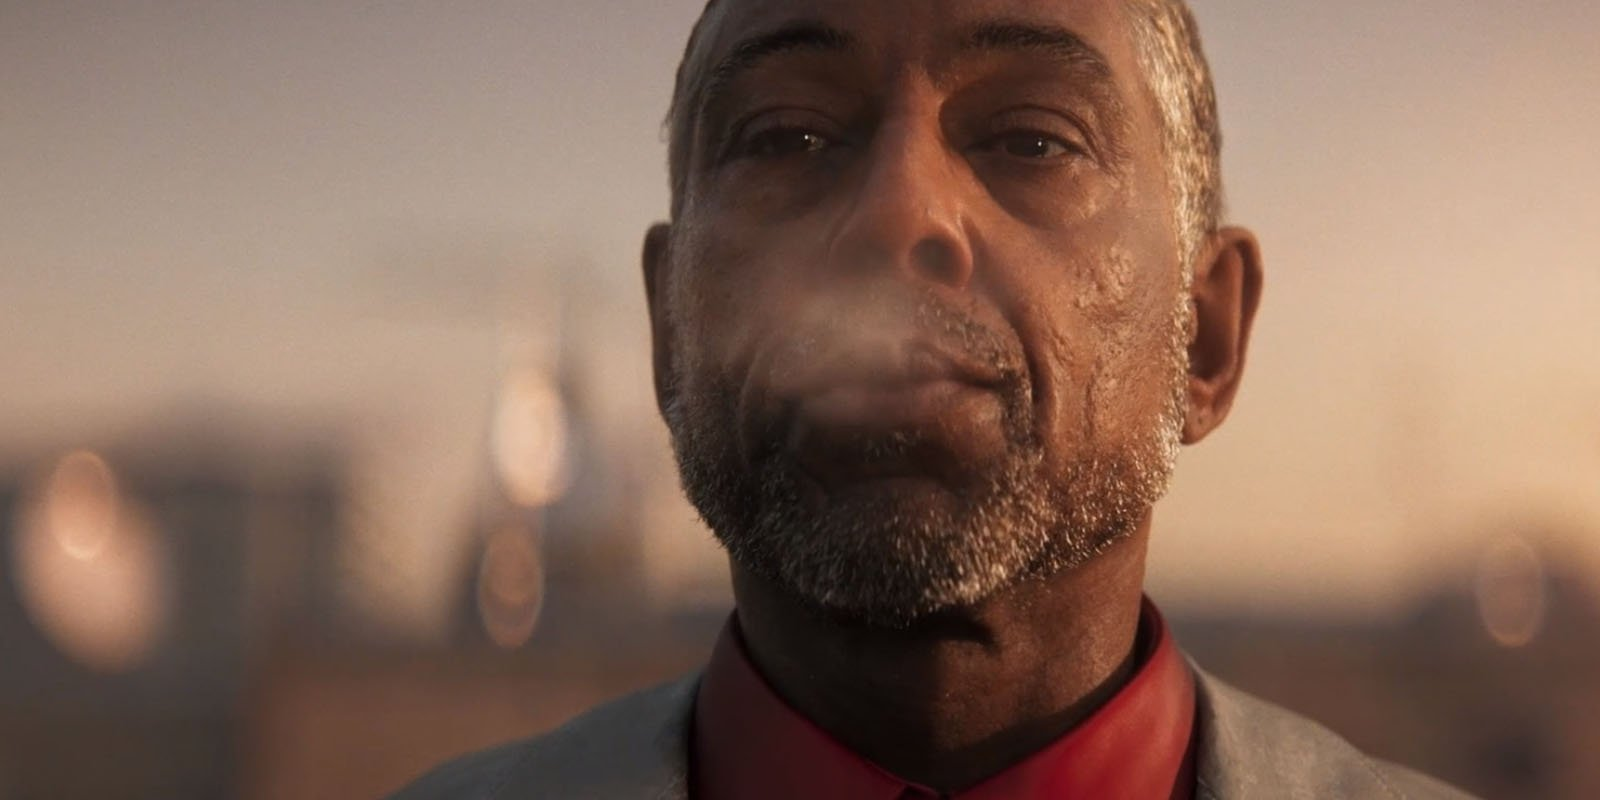 Here's another quick look at Giancarlo 'Gus' Esposito in Far Cry 6, out next February